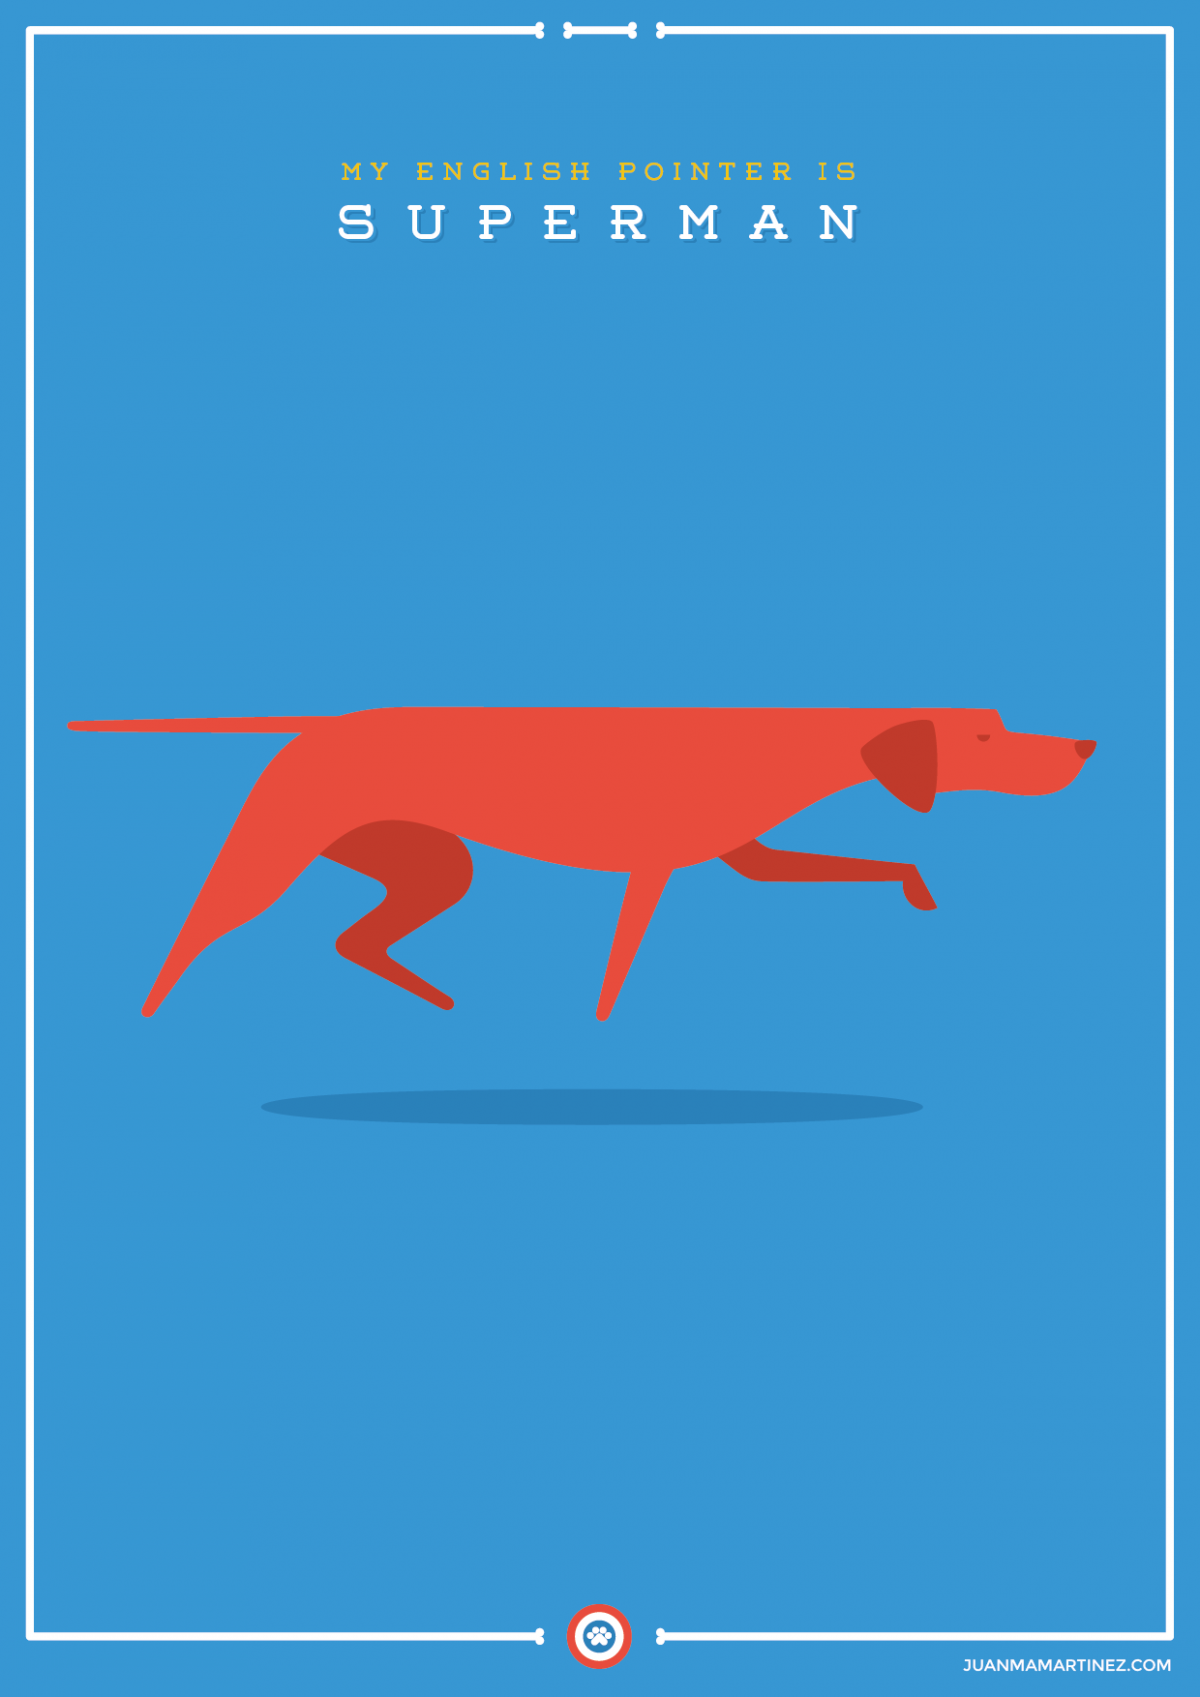 extraordinary-doggies-illustration-5